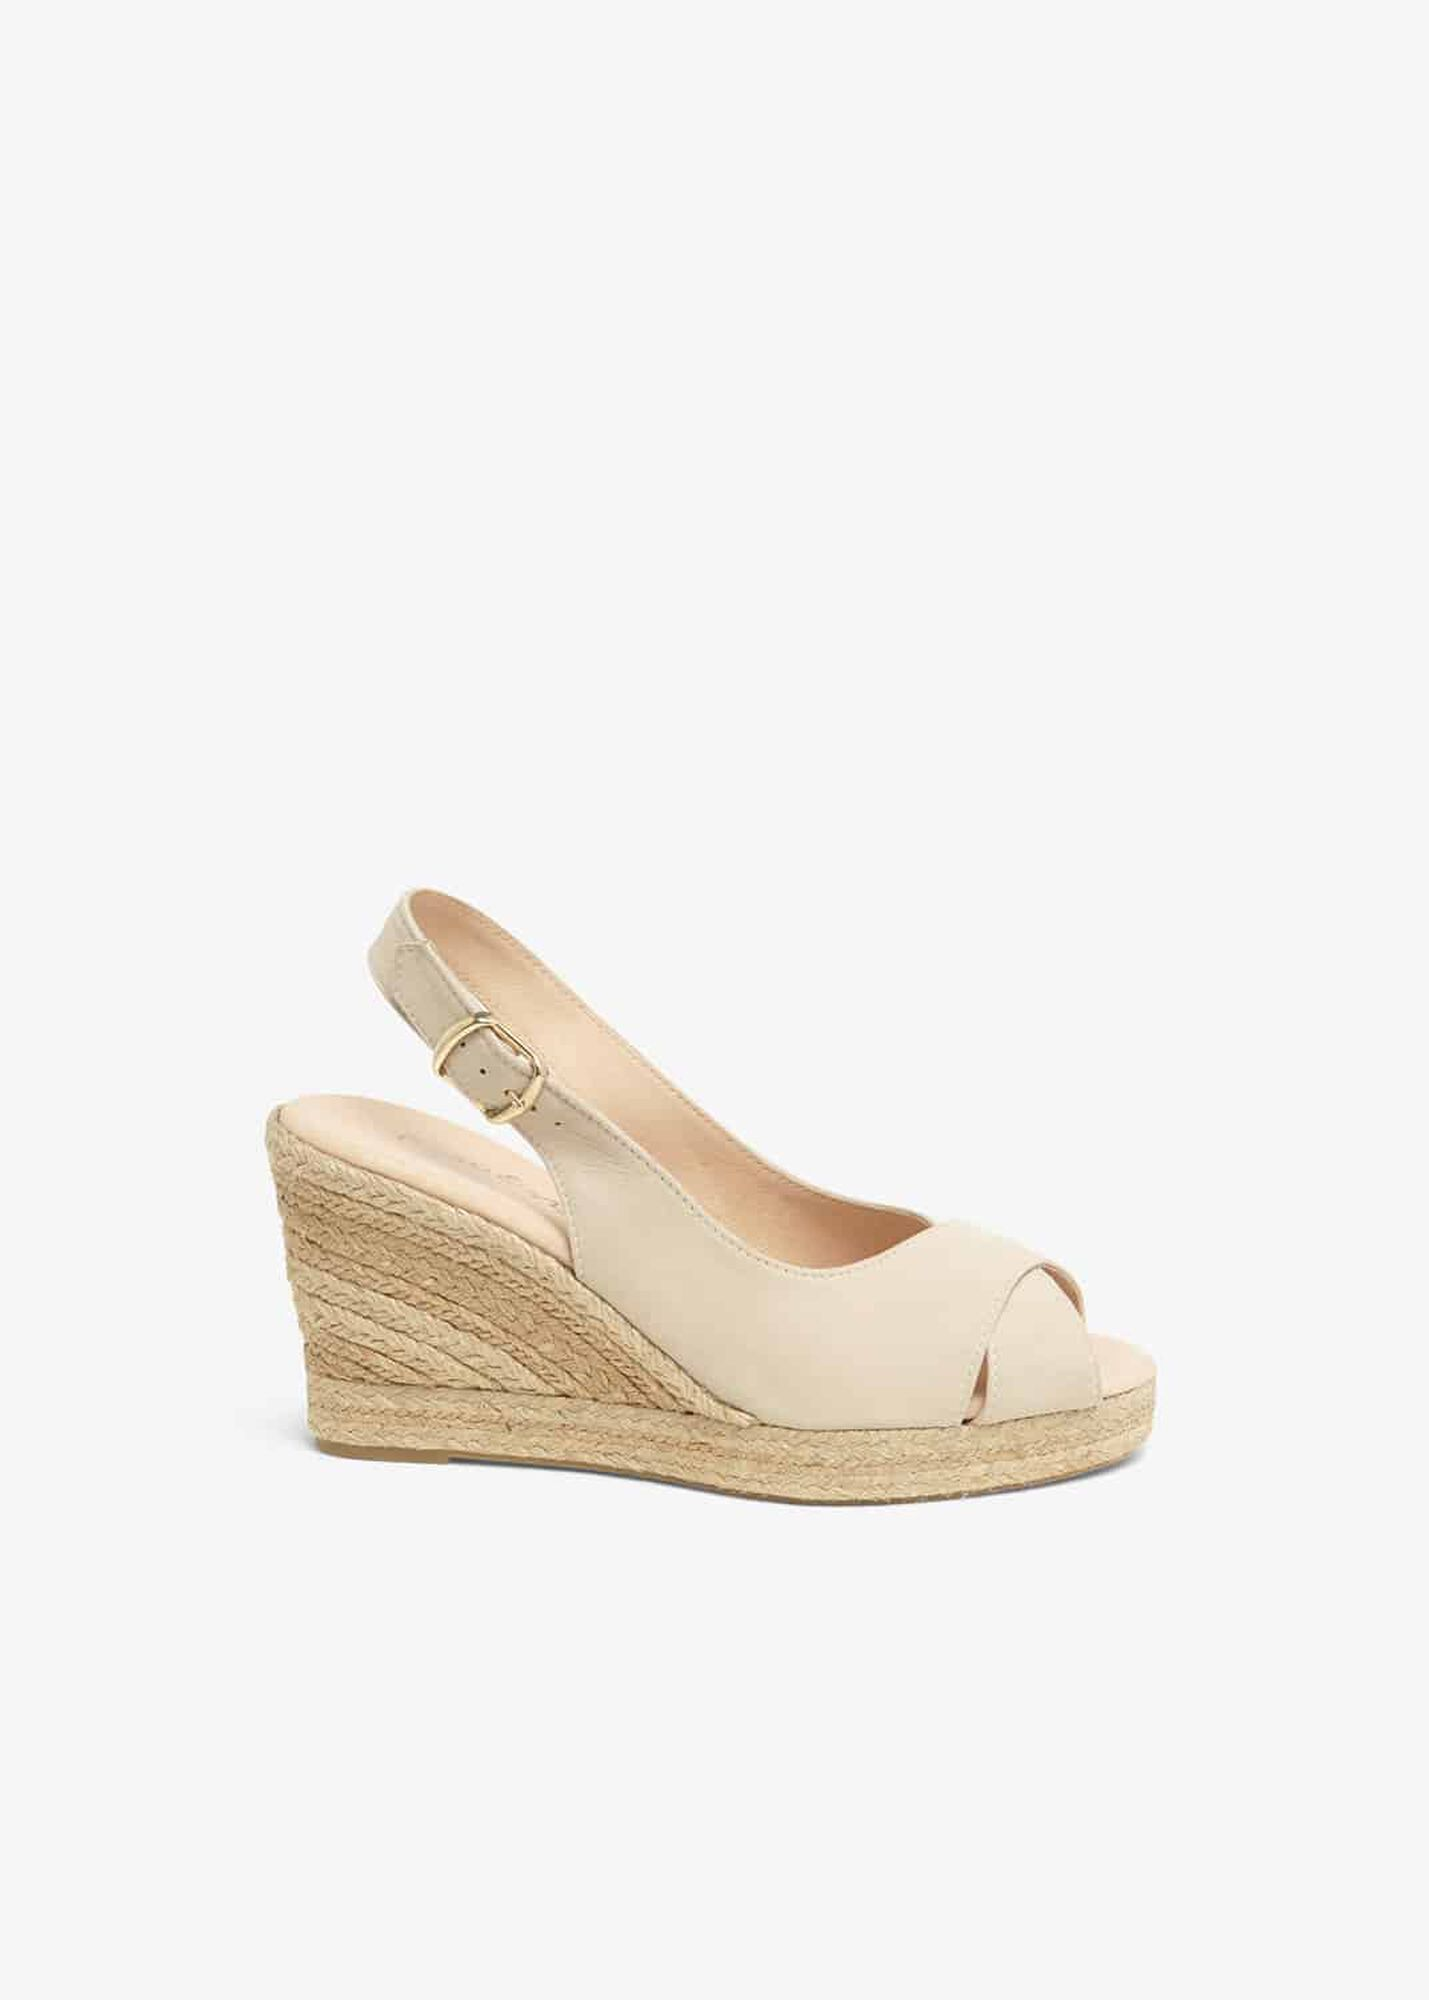 7de444e966e Lana Leather Peep Toe Espadrille Wedge Shoes | Phase Eight | Phase Eight